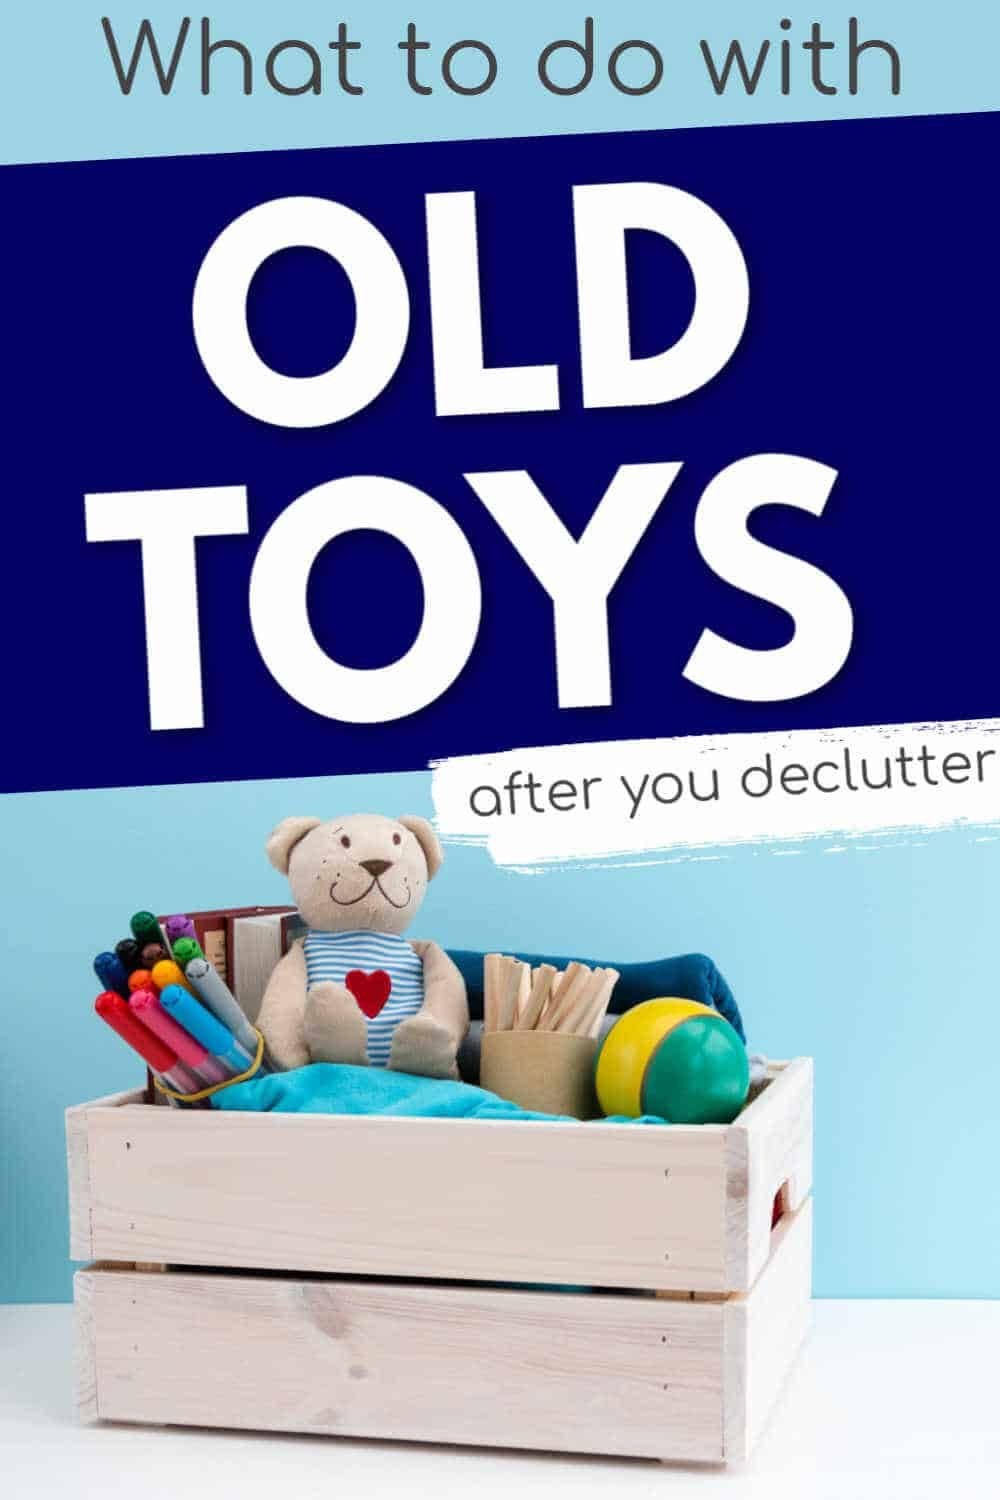 Where To Donate Old Toys After You Declutter In 2020 Old Toys Donate Used Toys Age Appropriate Toys